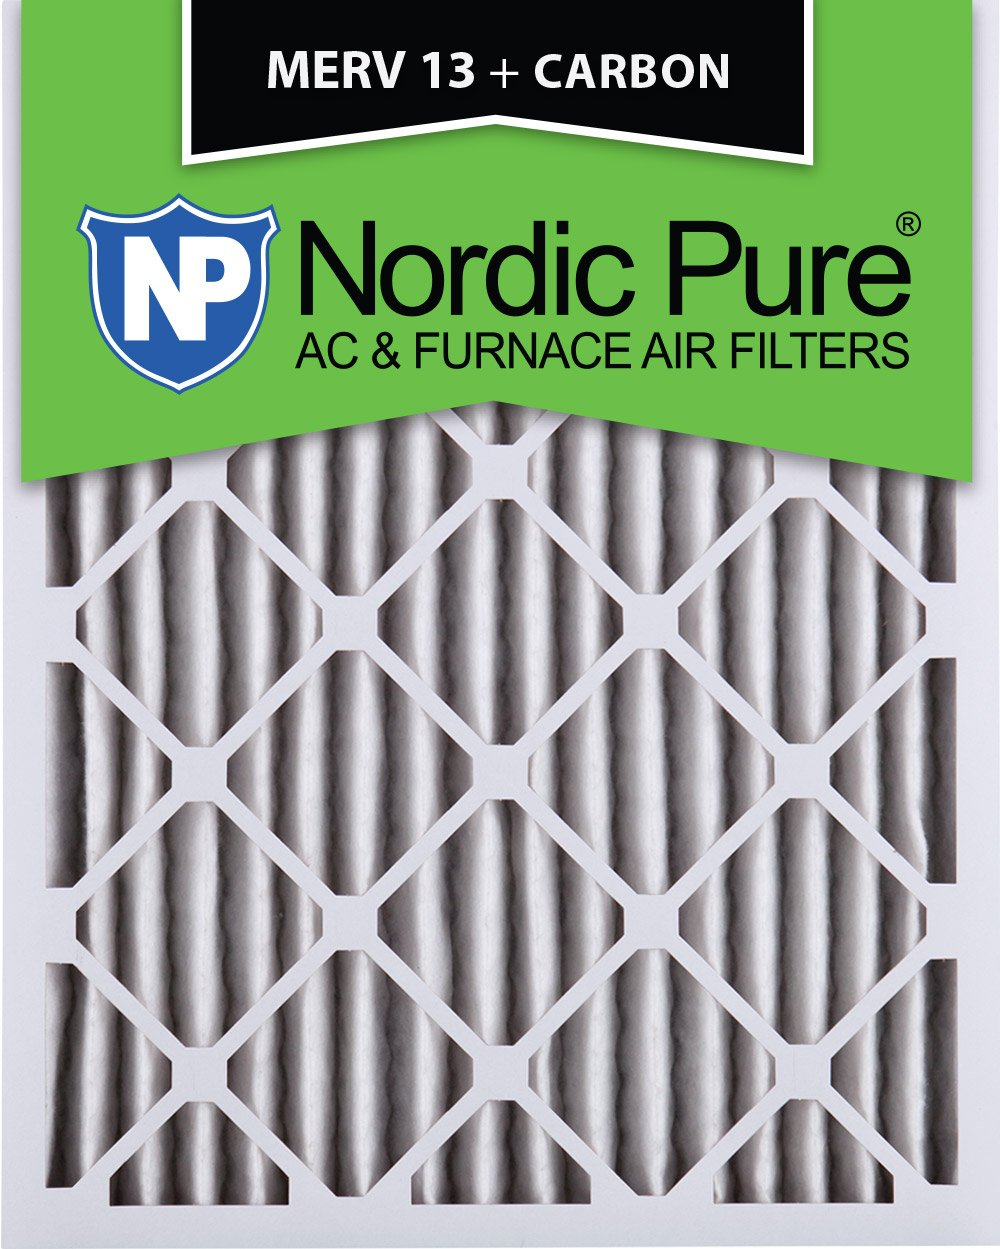 Nordic Pure 20x24x2 MERV 13 Plus Carbon Pleated AC Furnace Air Filters 3 Pack